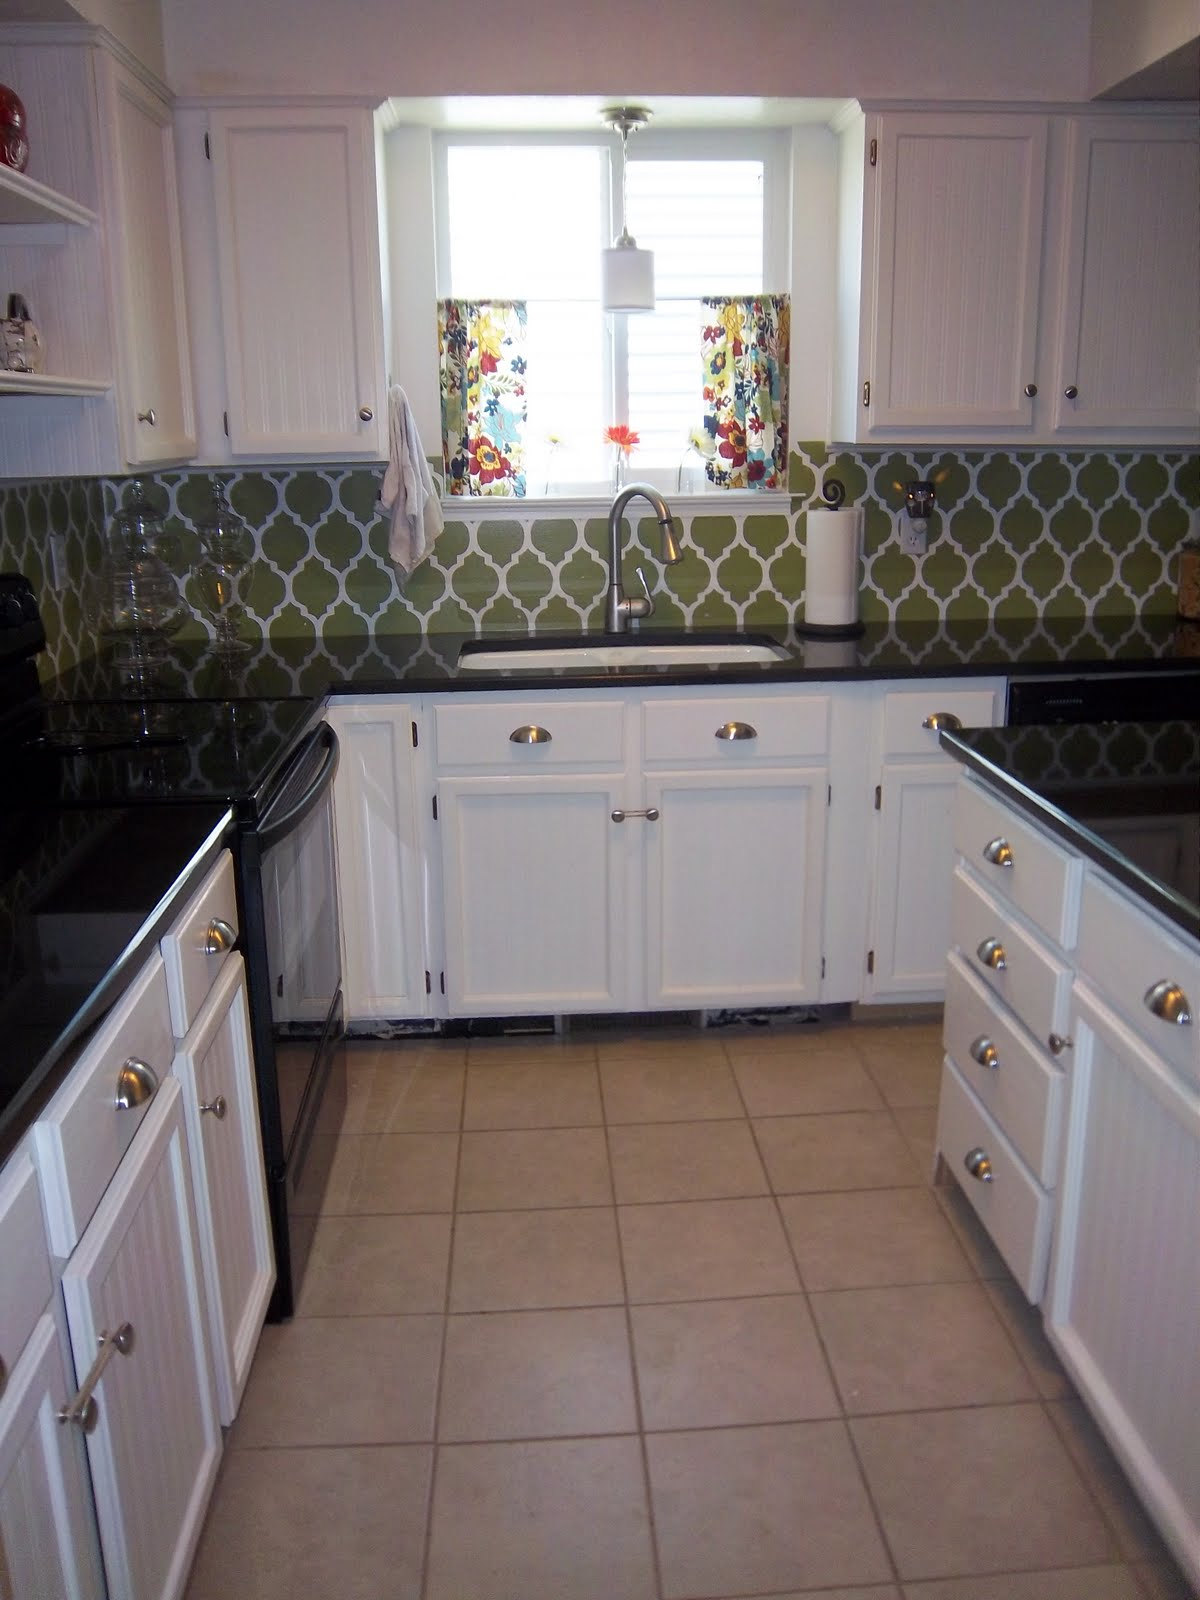 Remodelaholic kitchen remodel on a budget for Kitchen remodels on a budget